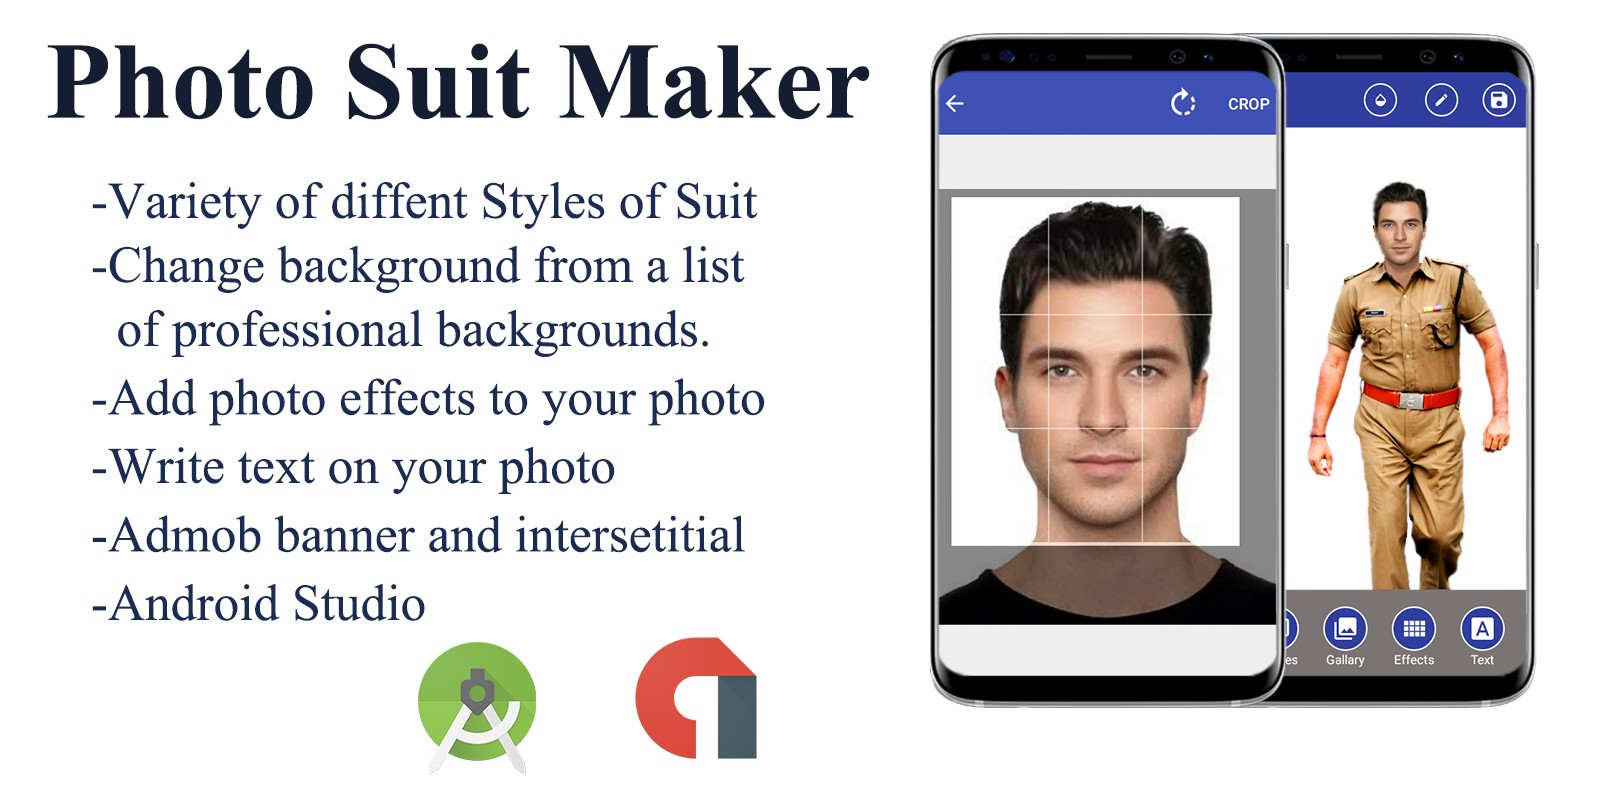 Photo Suit Maker - Android Source Code